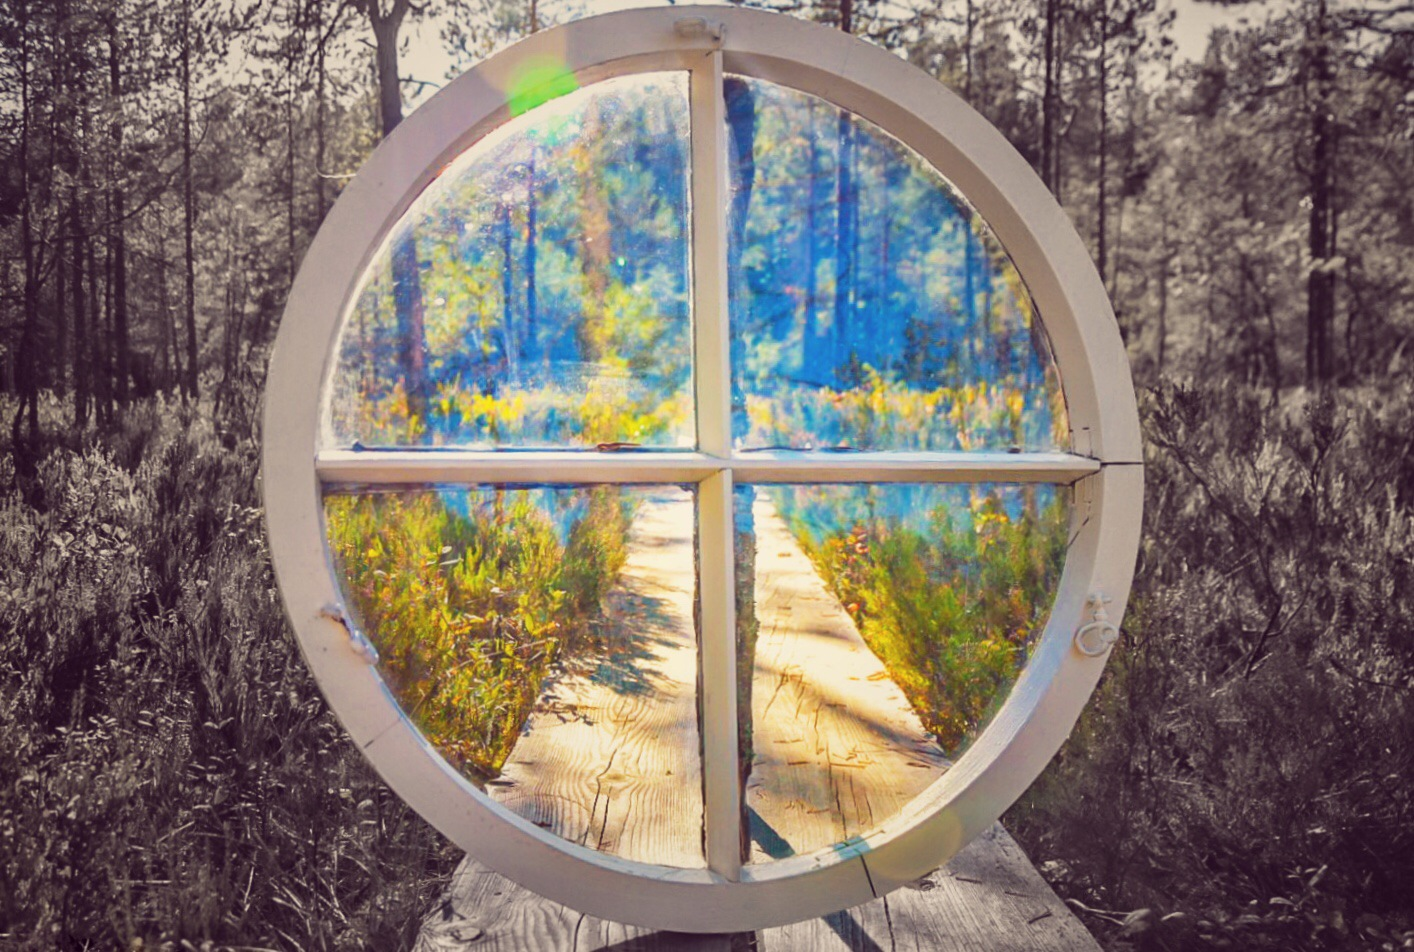 A window to another world. by Heidi Salo